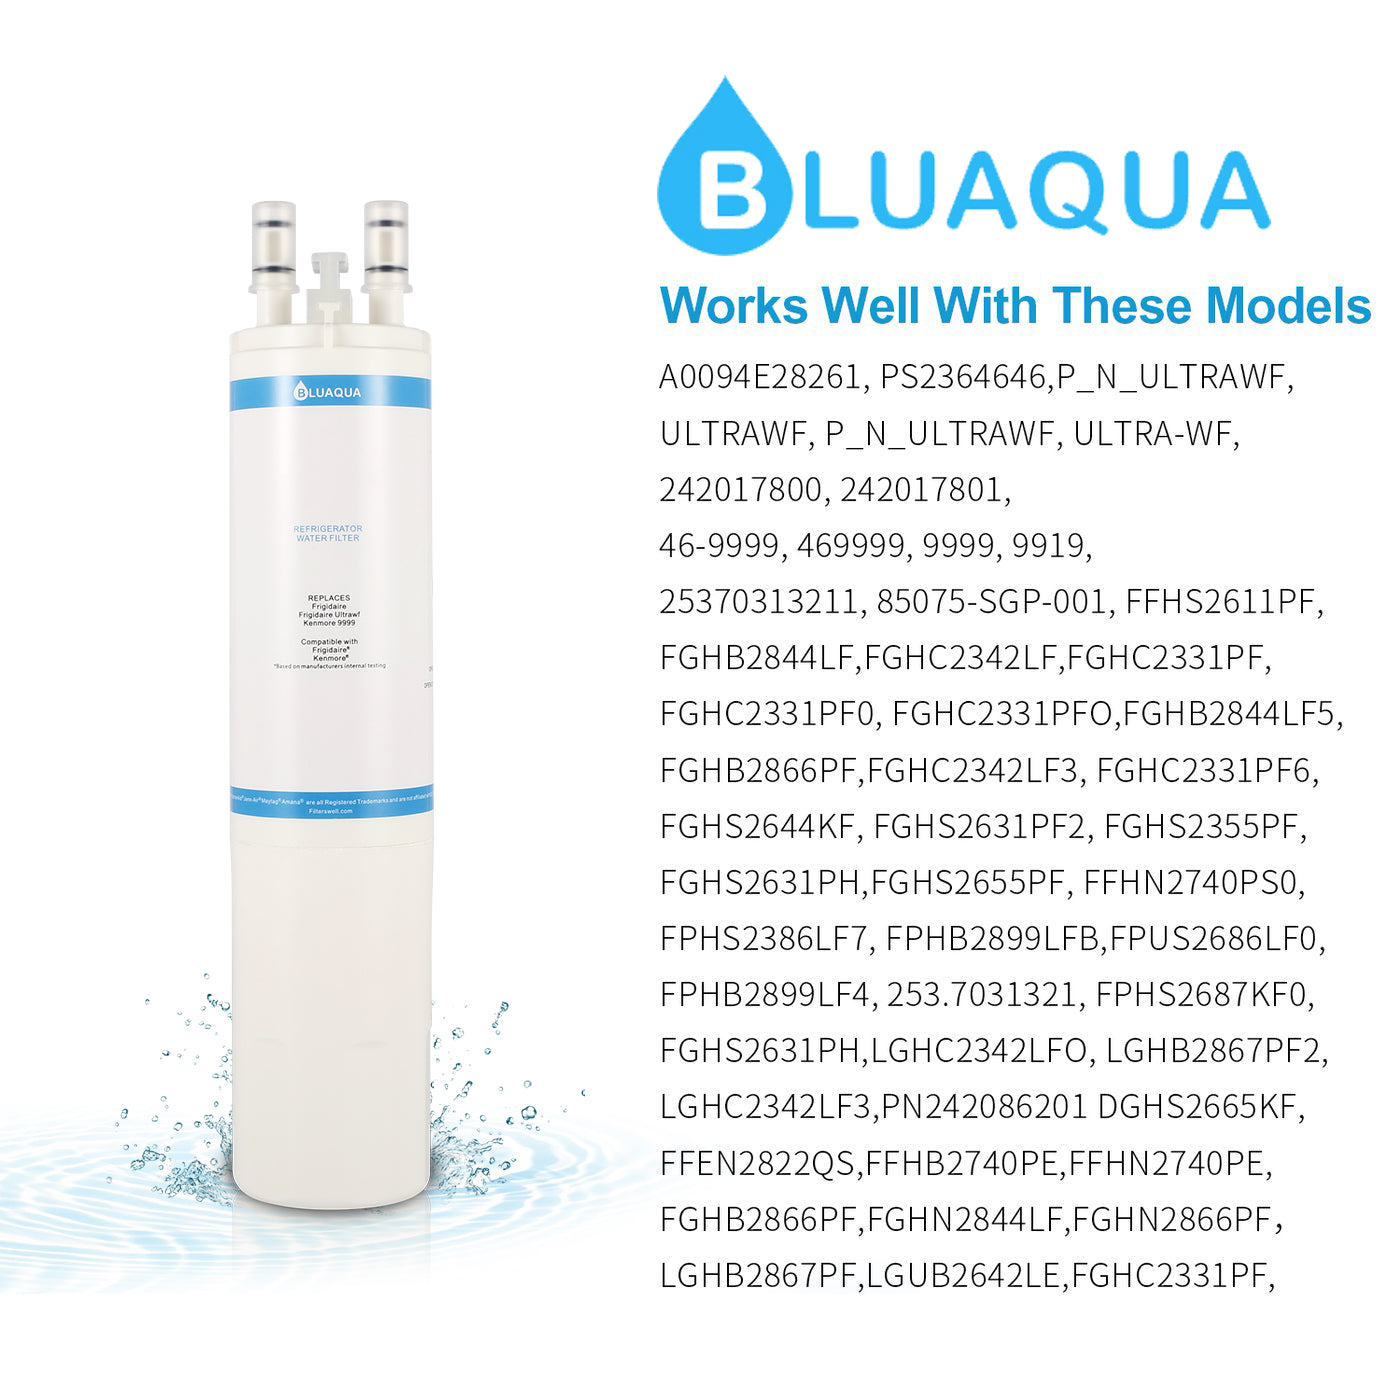 Substitute for kenmore water filter 046-9999  with Bluaqua ultrawf water filters